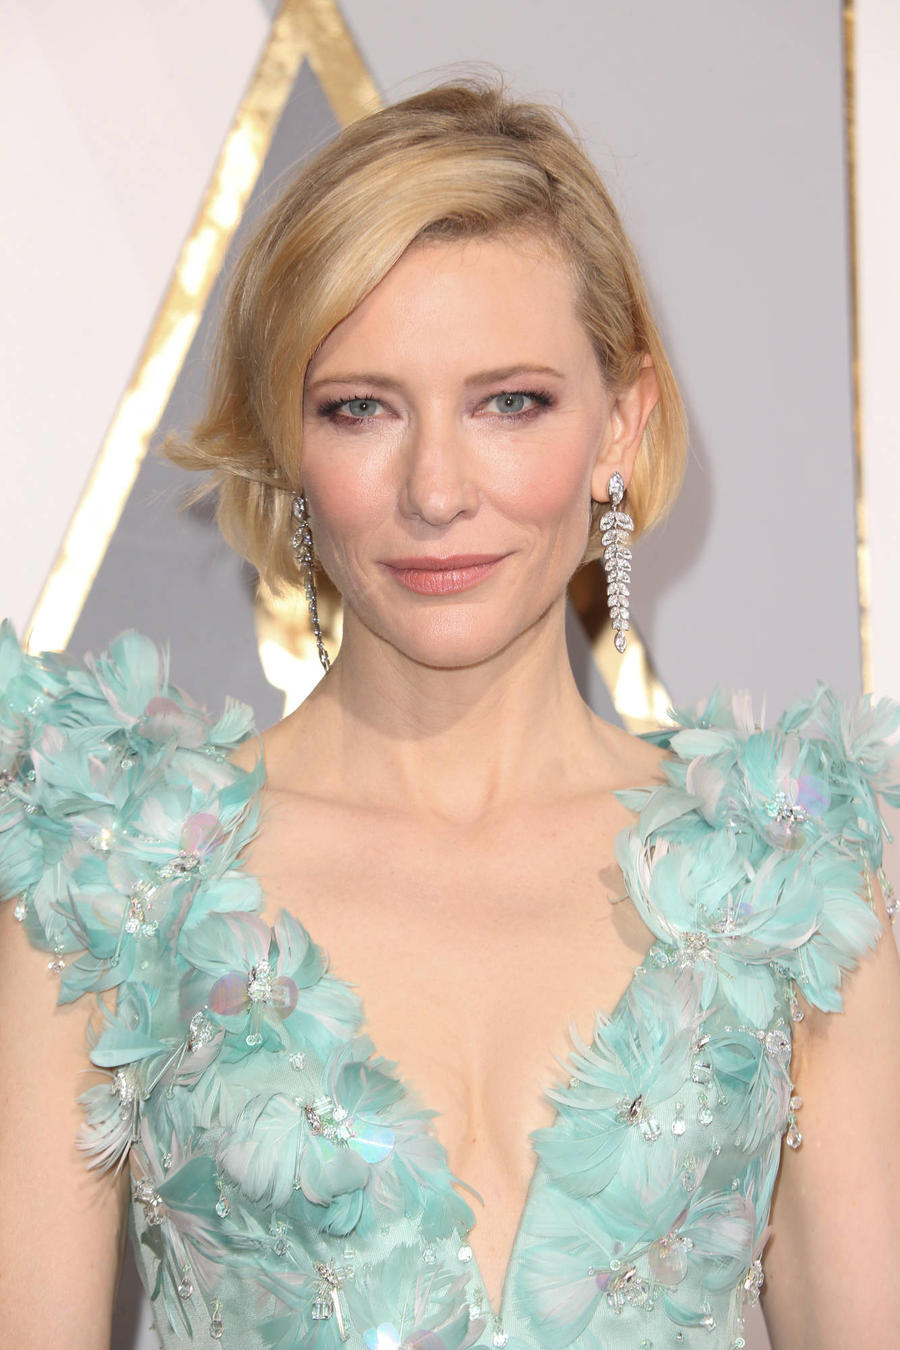 Cate Blanchett: My Son Can't Watch Me Act